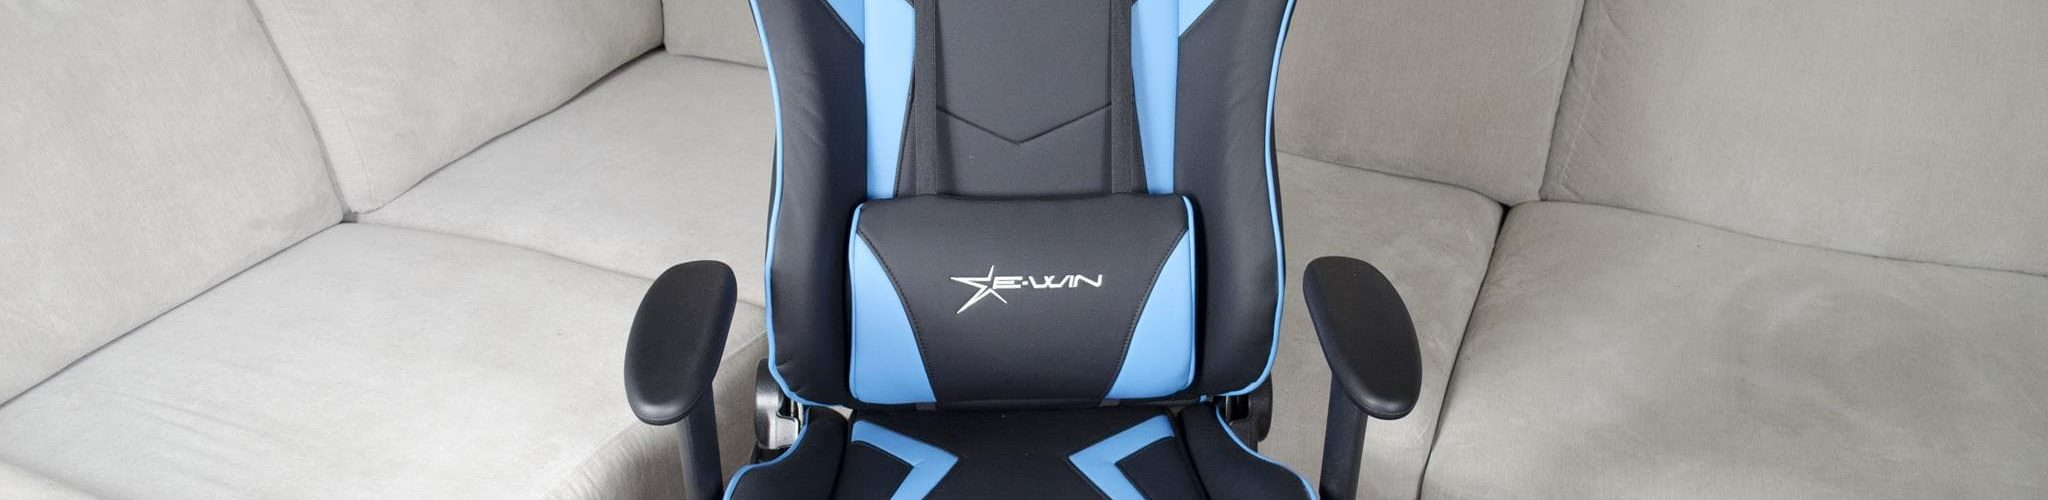 Best Computer Gaming Chair-min